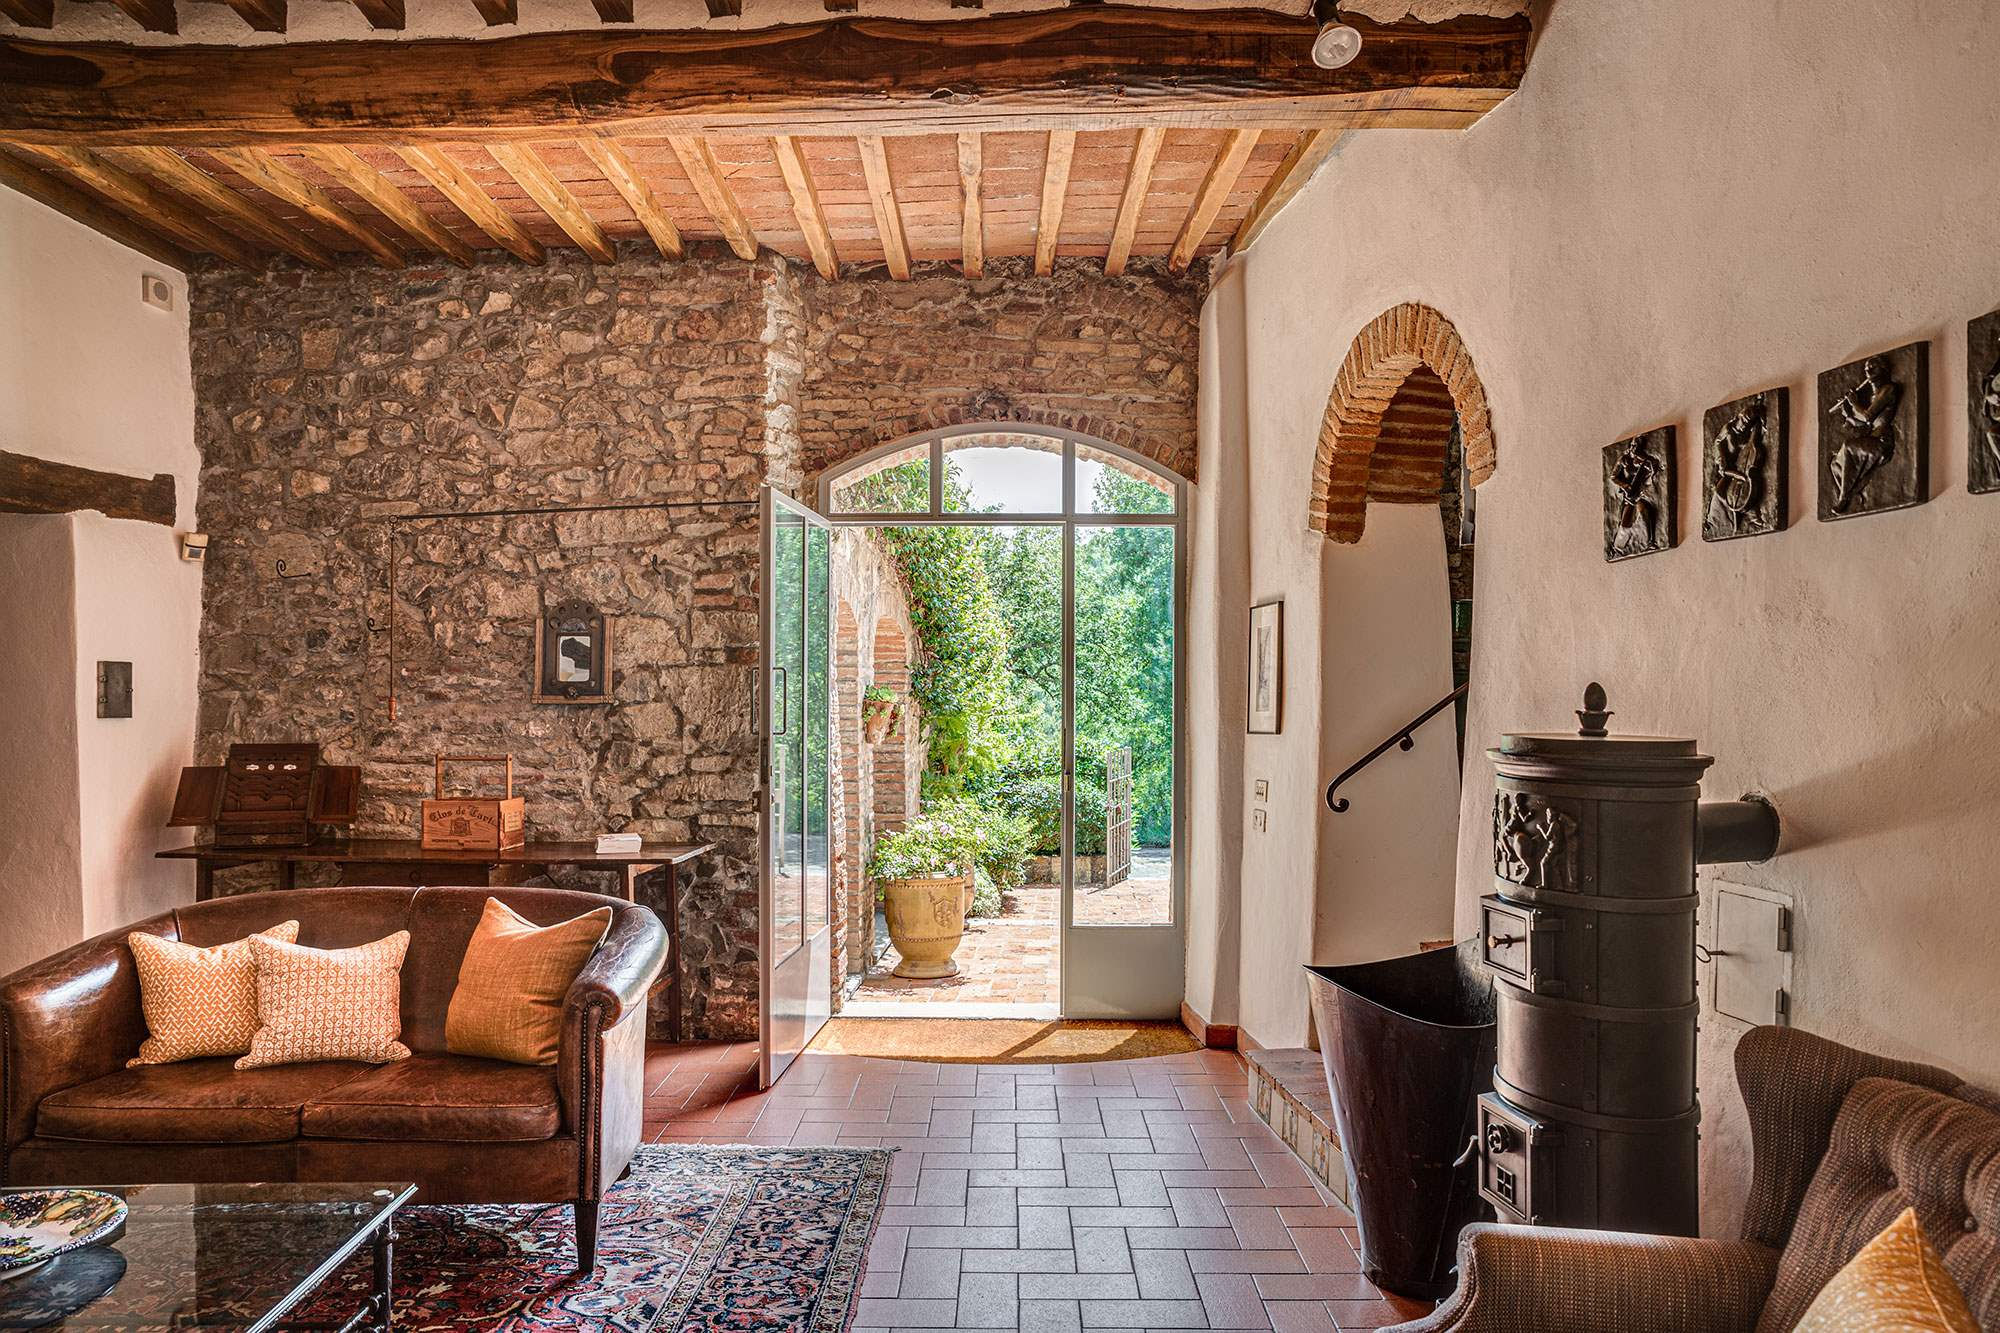 Villa Claudia, 6 Bedroom rate, 6 bedroom villa in Chianti & Countryside, Tuscany Photo #12